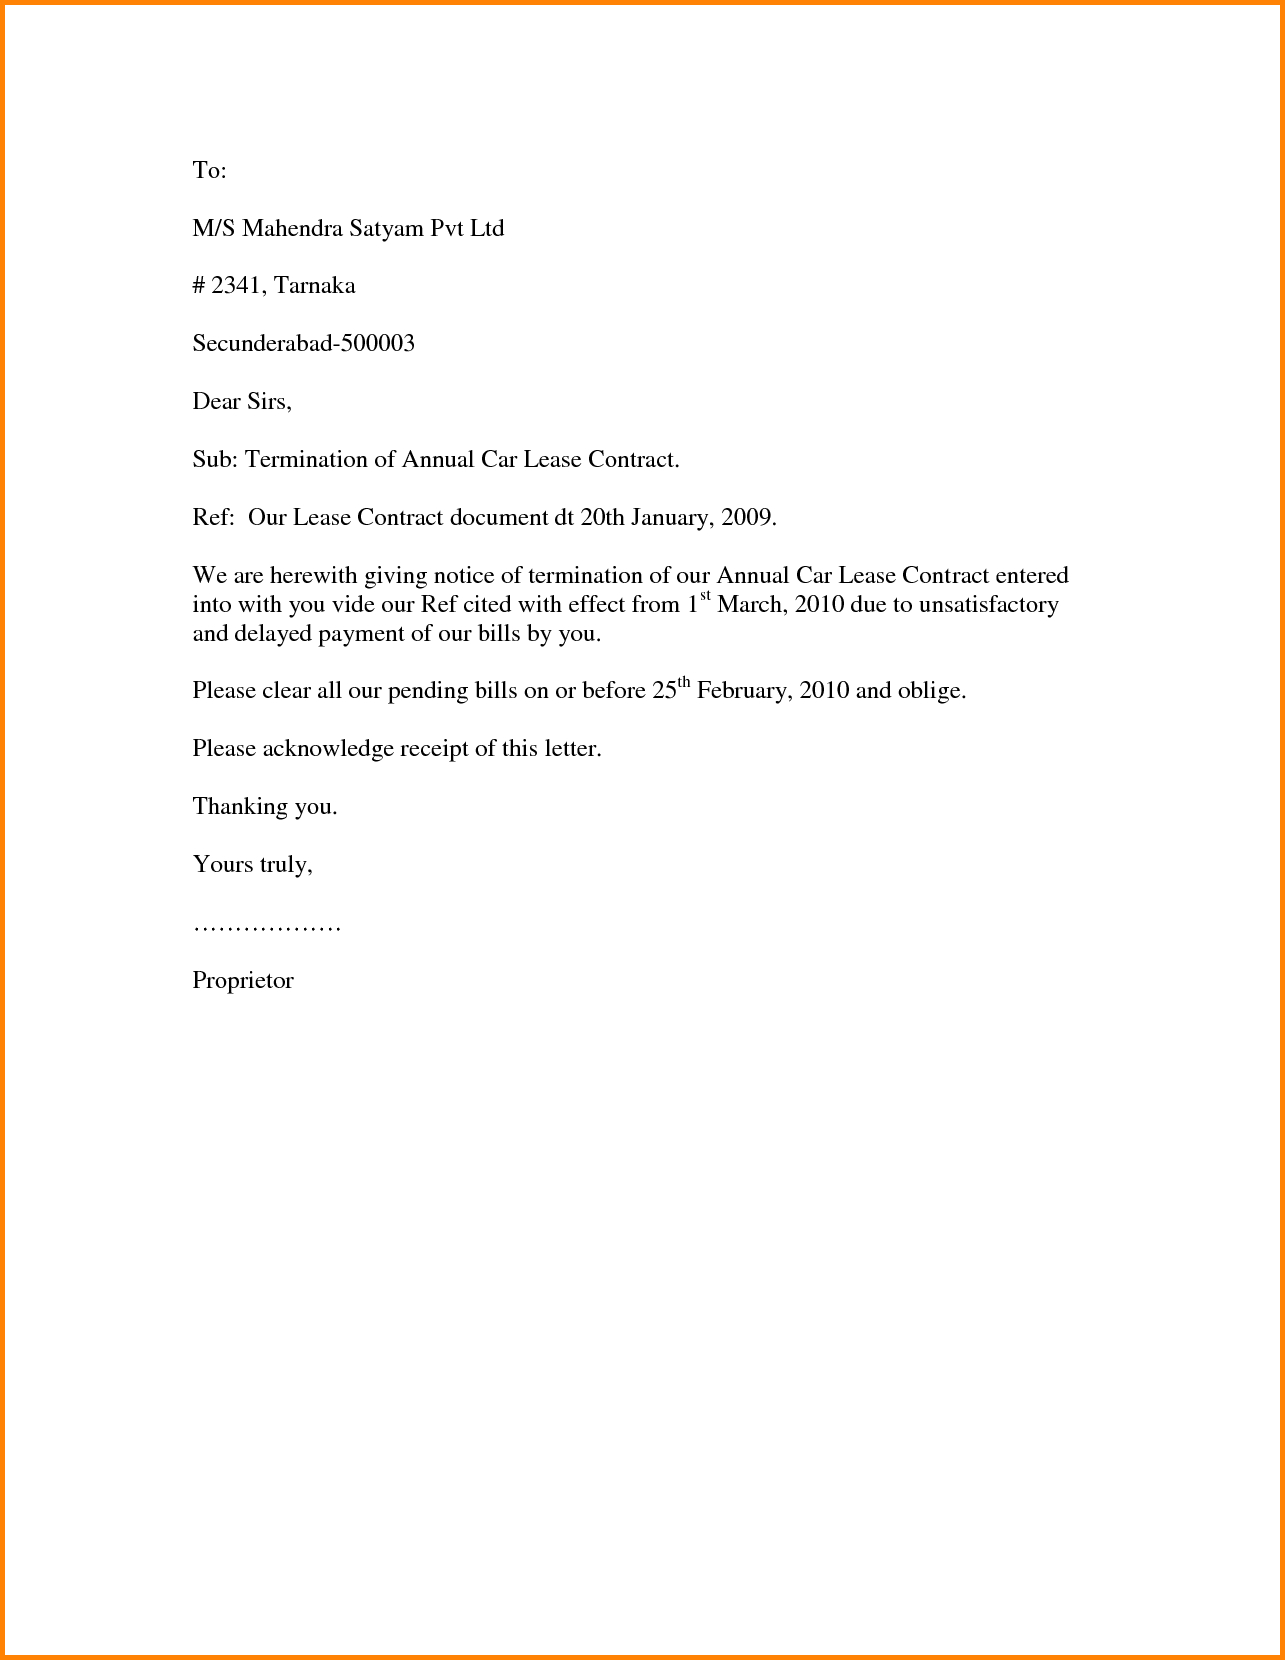 rent free letter from parents template Collection-Letter Template To End A Contract Copy Contract Letter Work Sample 12-t